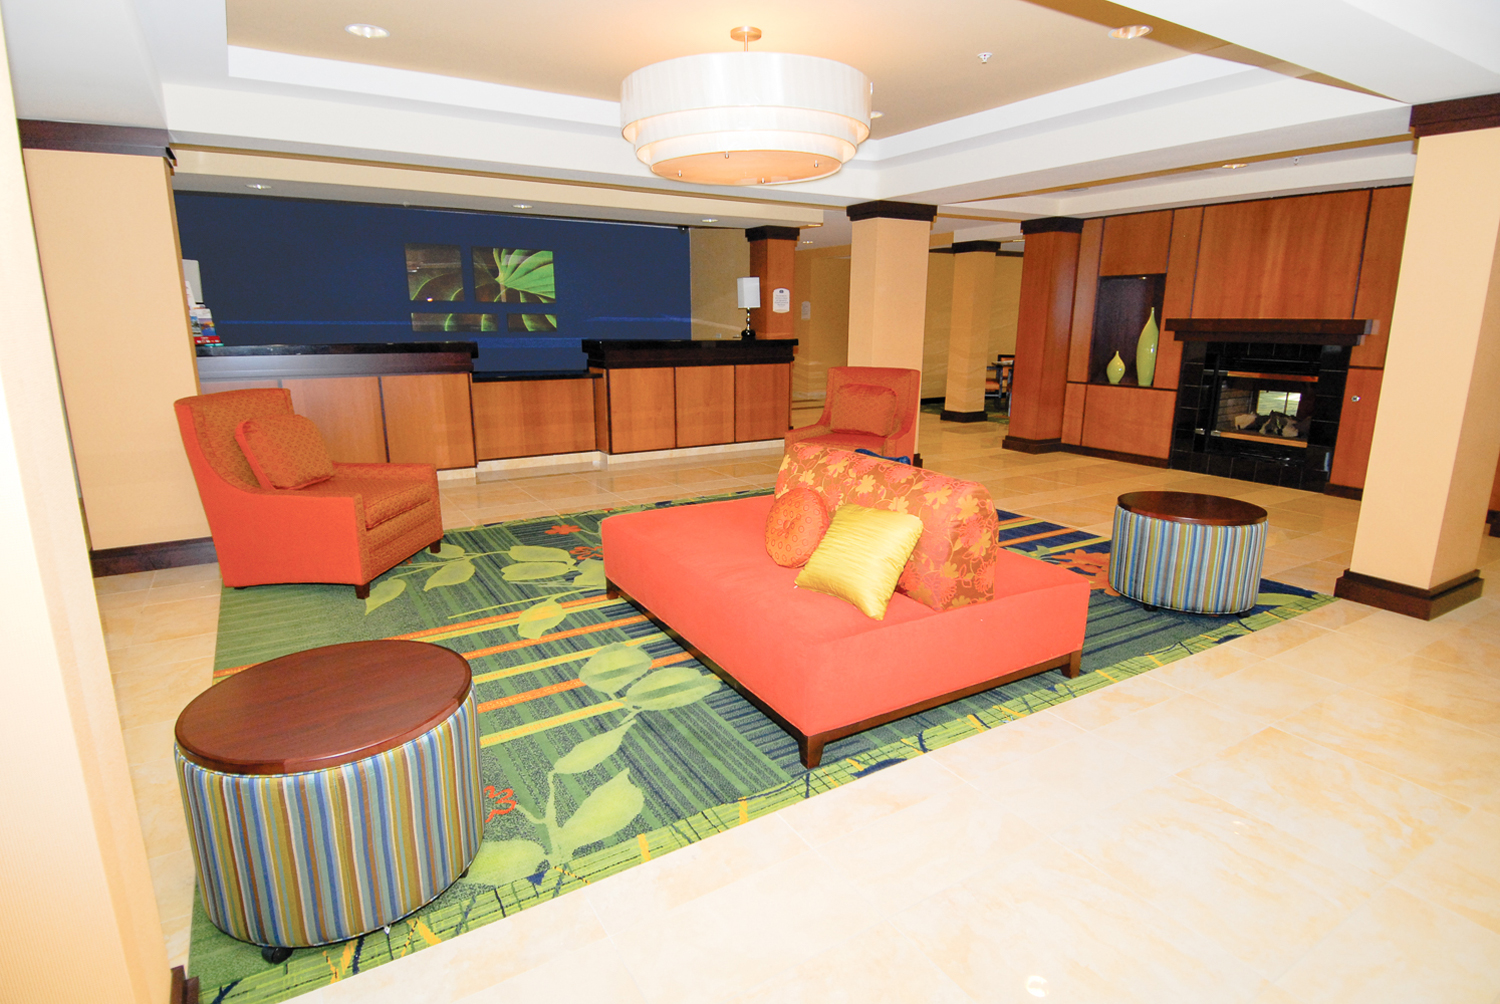 Fairfield-Inn-in-Memphis,-Tn---Hospitality-Hotel-Design-Construction-3.jpg